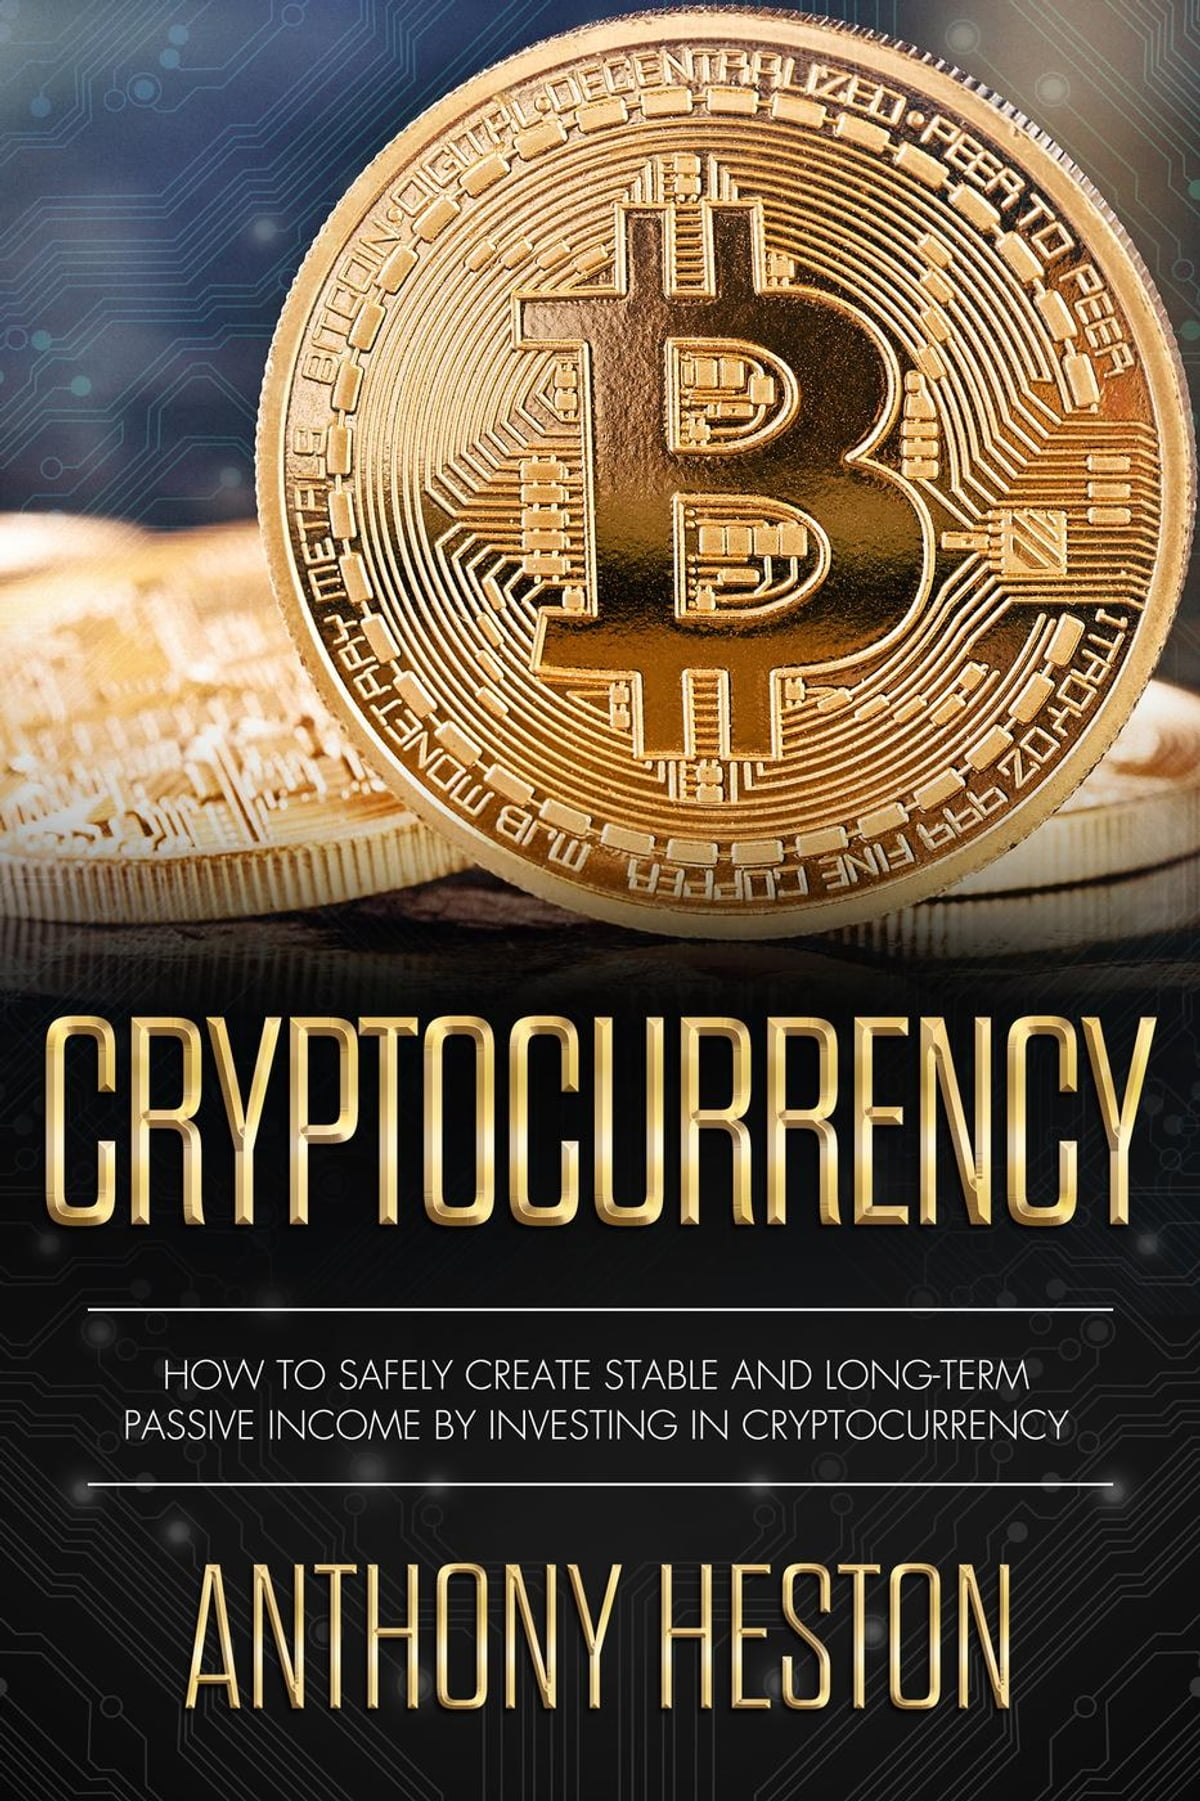 Cryptocurrency: How to Safely Create Stable and Long-term Passive Income by Investing in Cryptocurrency eBook by Anthony Heston - 9781386251521 - Rakuten Kobo Cryptocurrency: How to Safely Create Stable and Long-term Passive Income by Investing in Cryptocurrency ebook by Anthony Heston - Rakuten Kobo - 웹